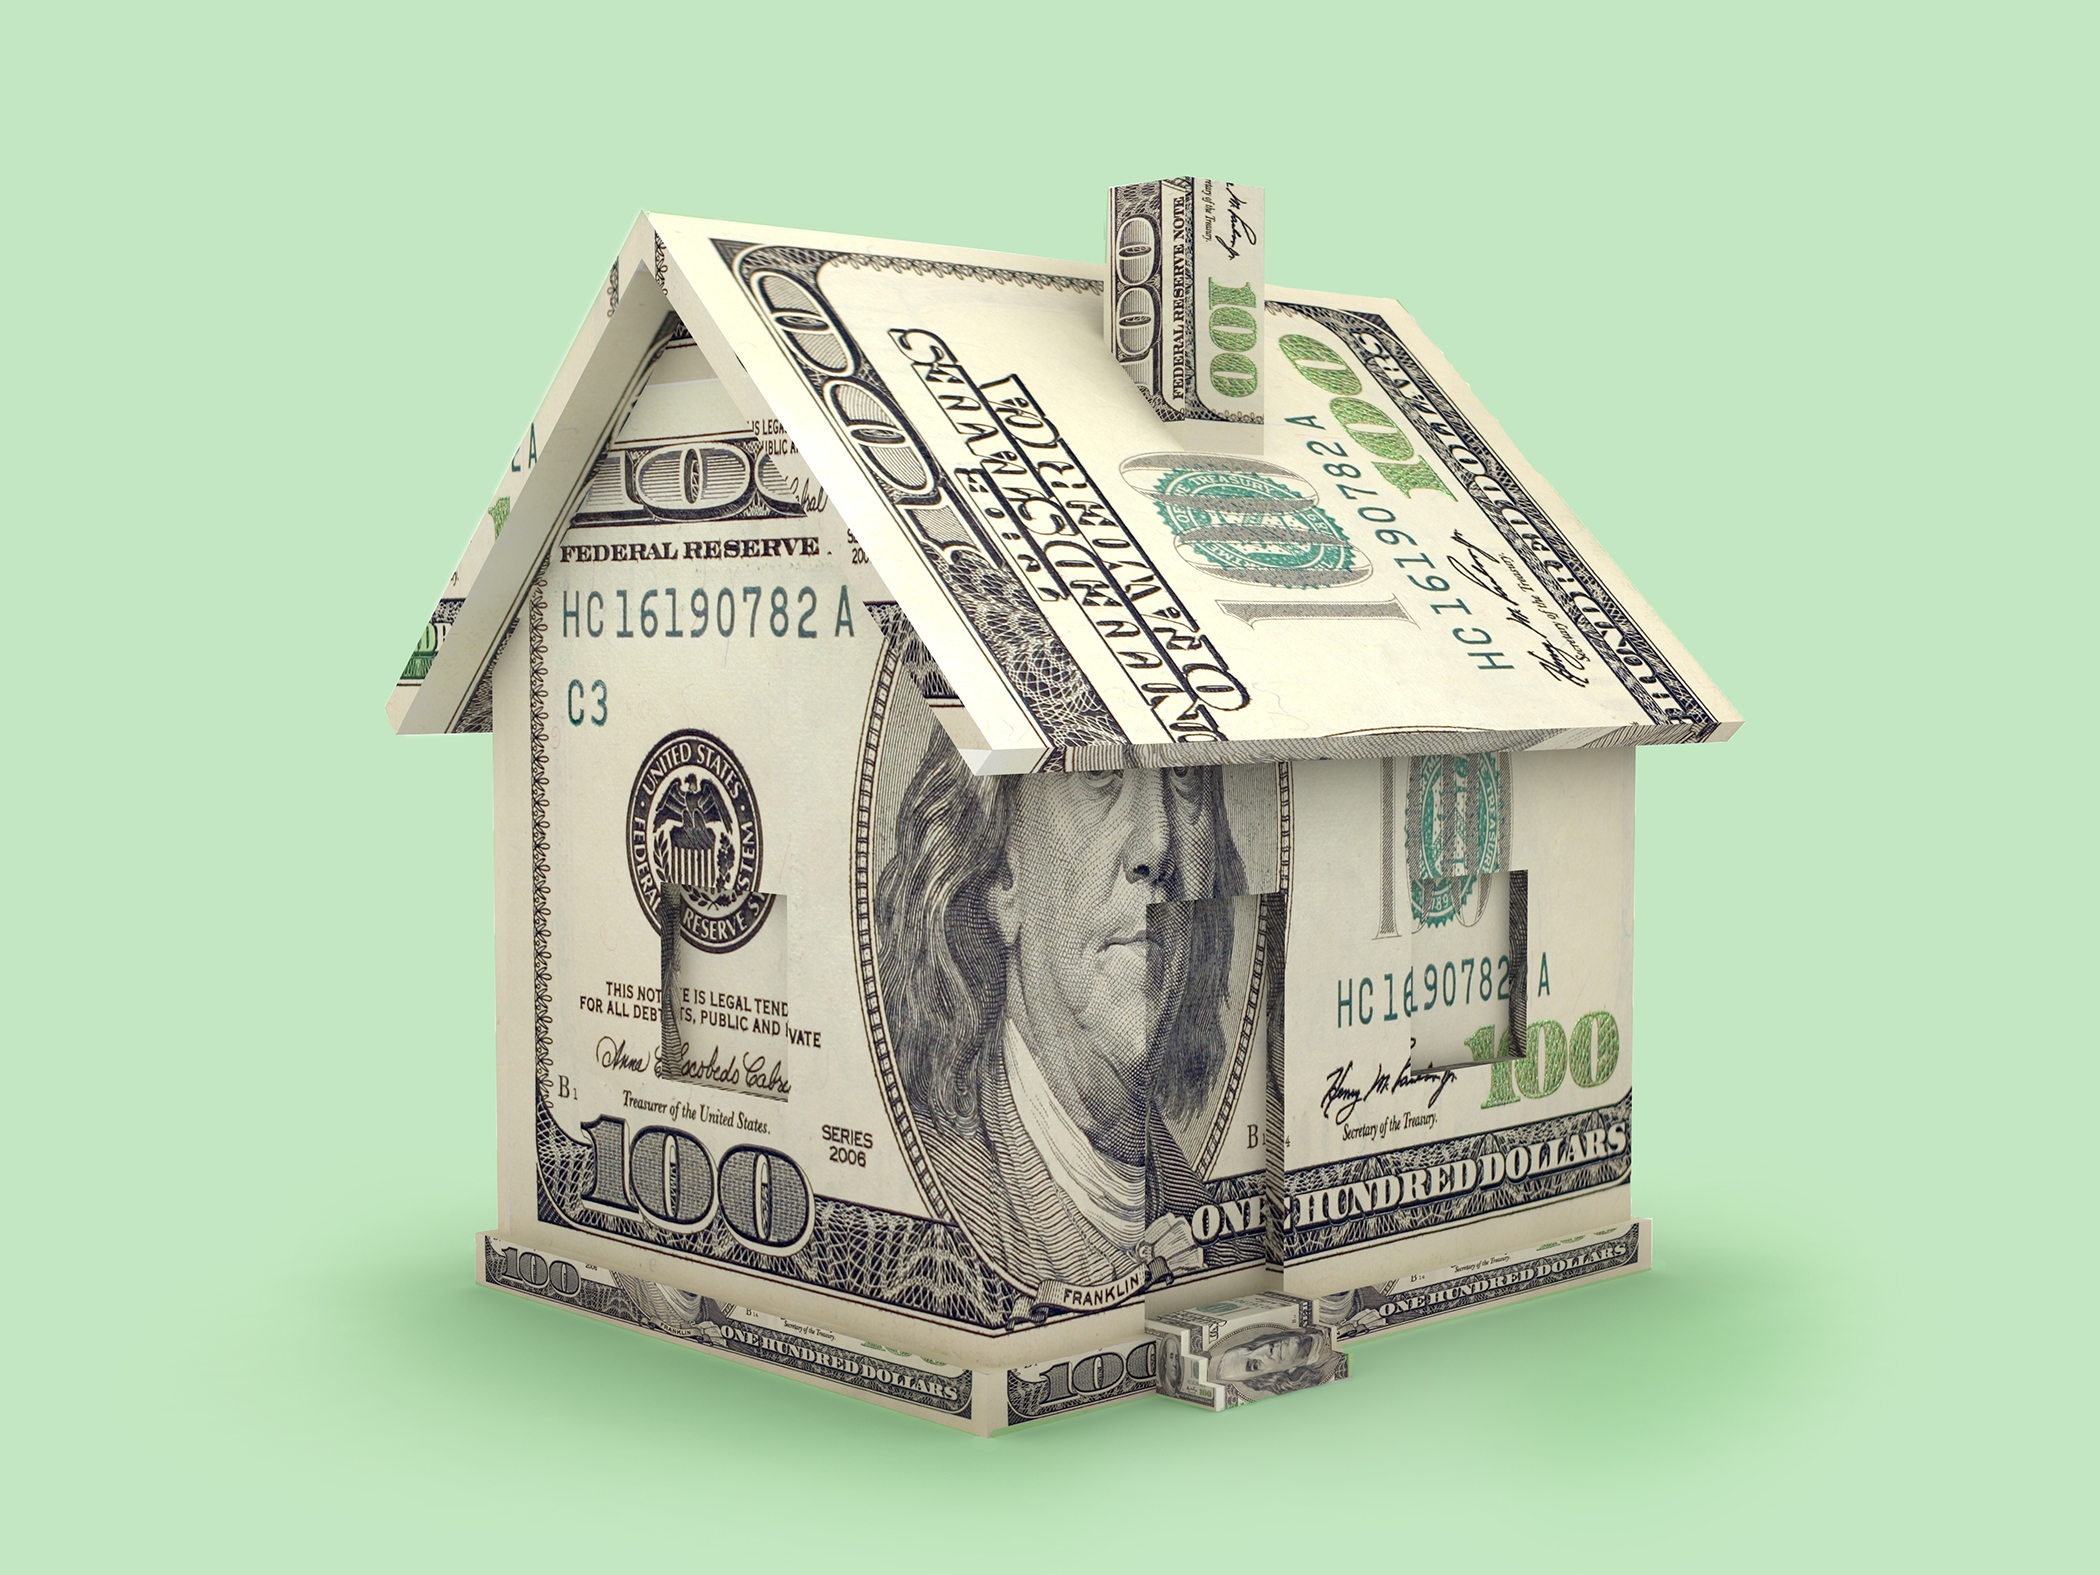 Investors Pay Cash for Homes, Push Millennials Out of Market | Money